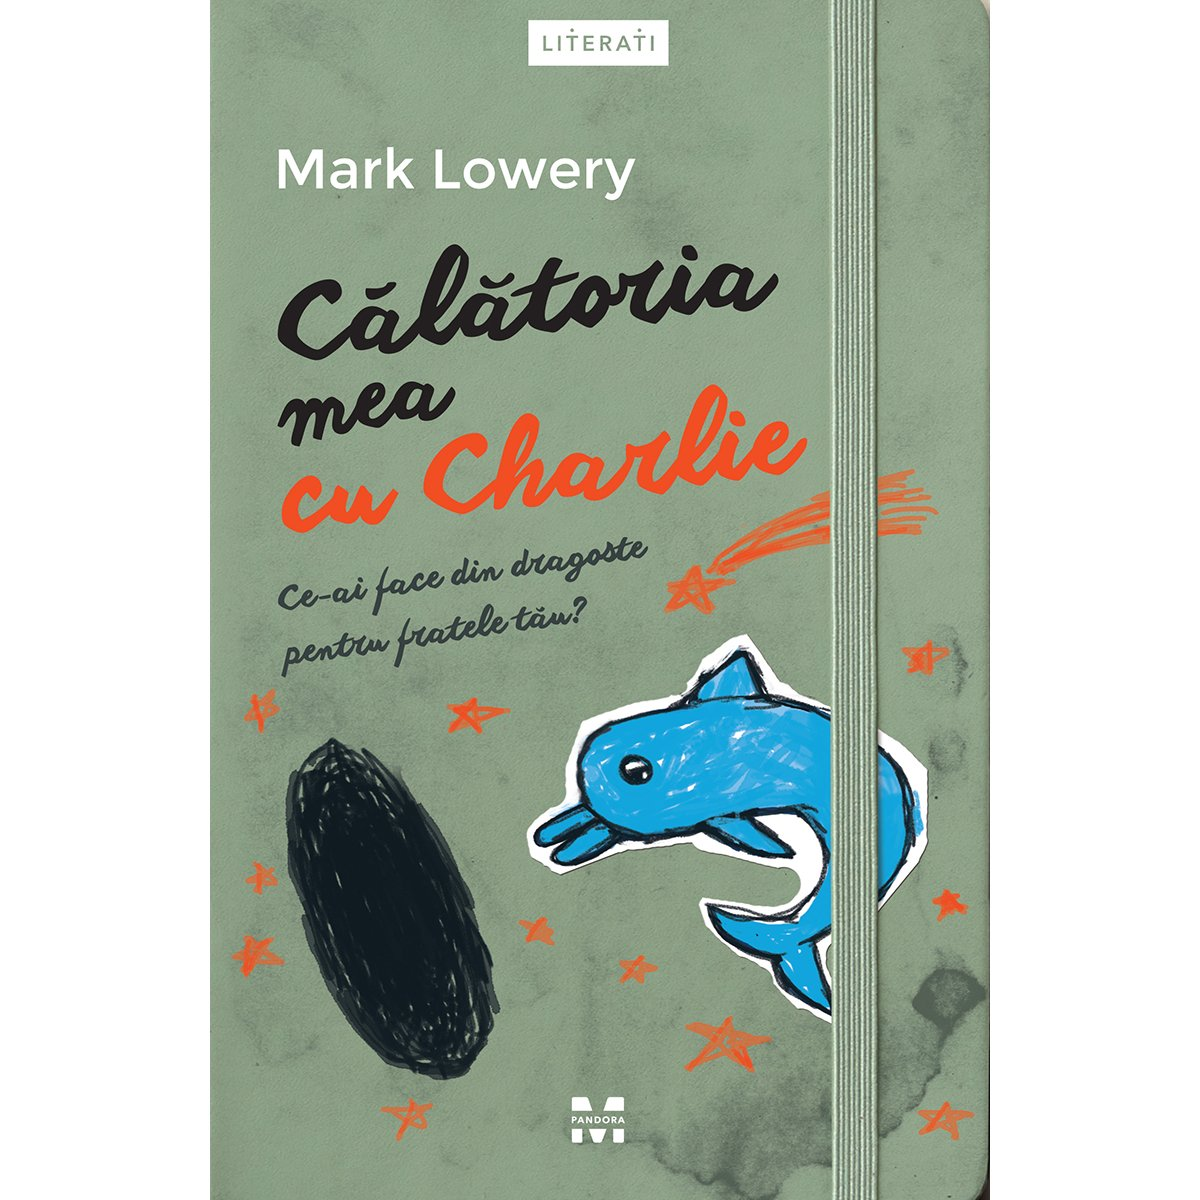 Carte Editura Pandora M, Calatoria mea cu Charlie, Mark Lowery